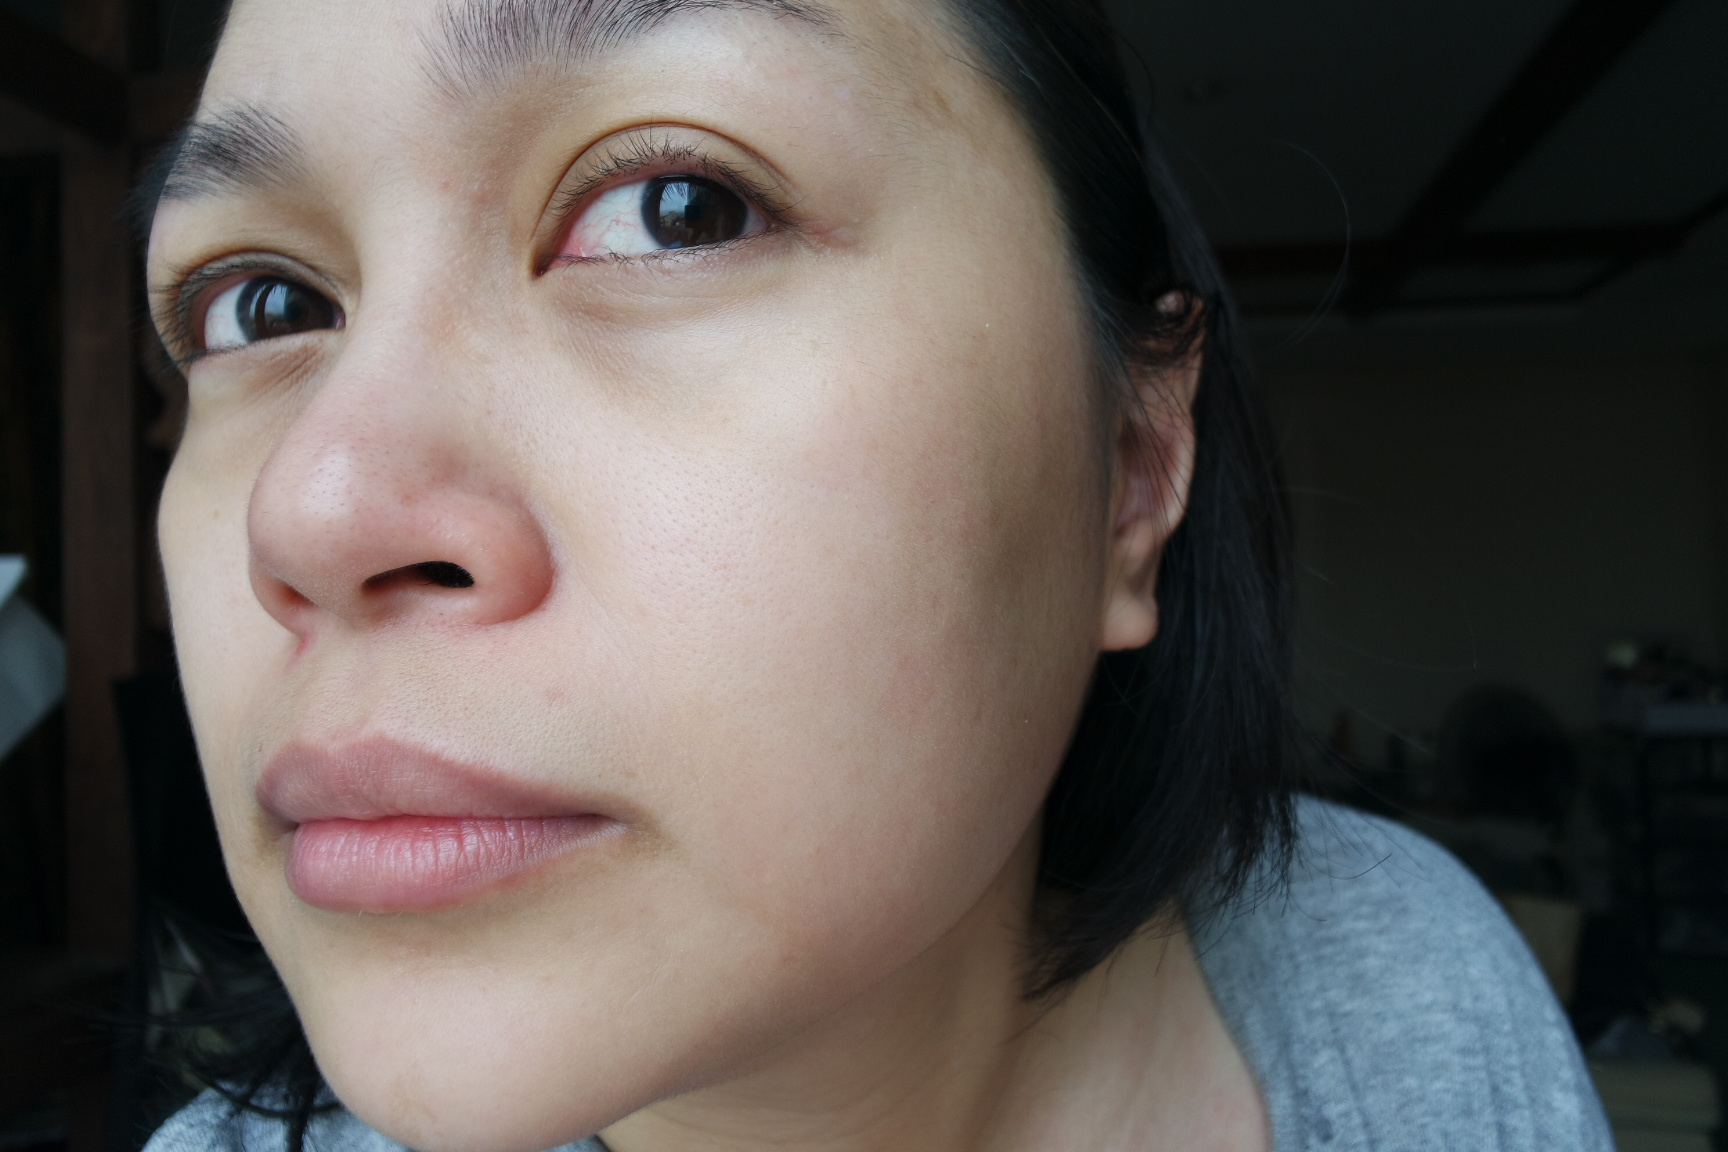 Before the treatment - Redness on my nose, rough texture on my cheeks, some dullness